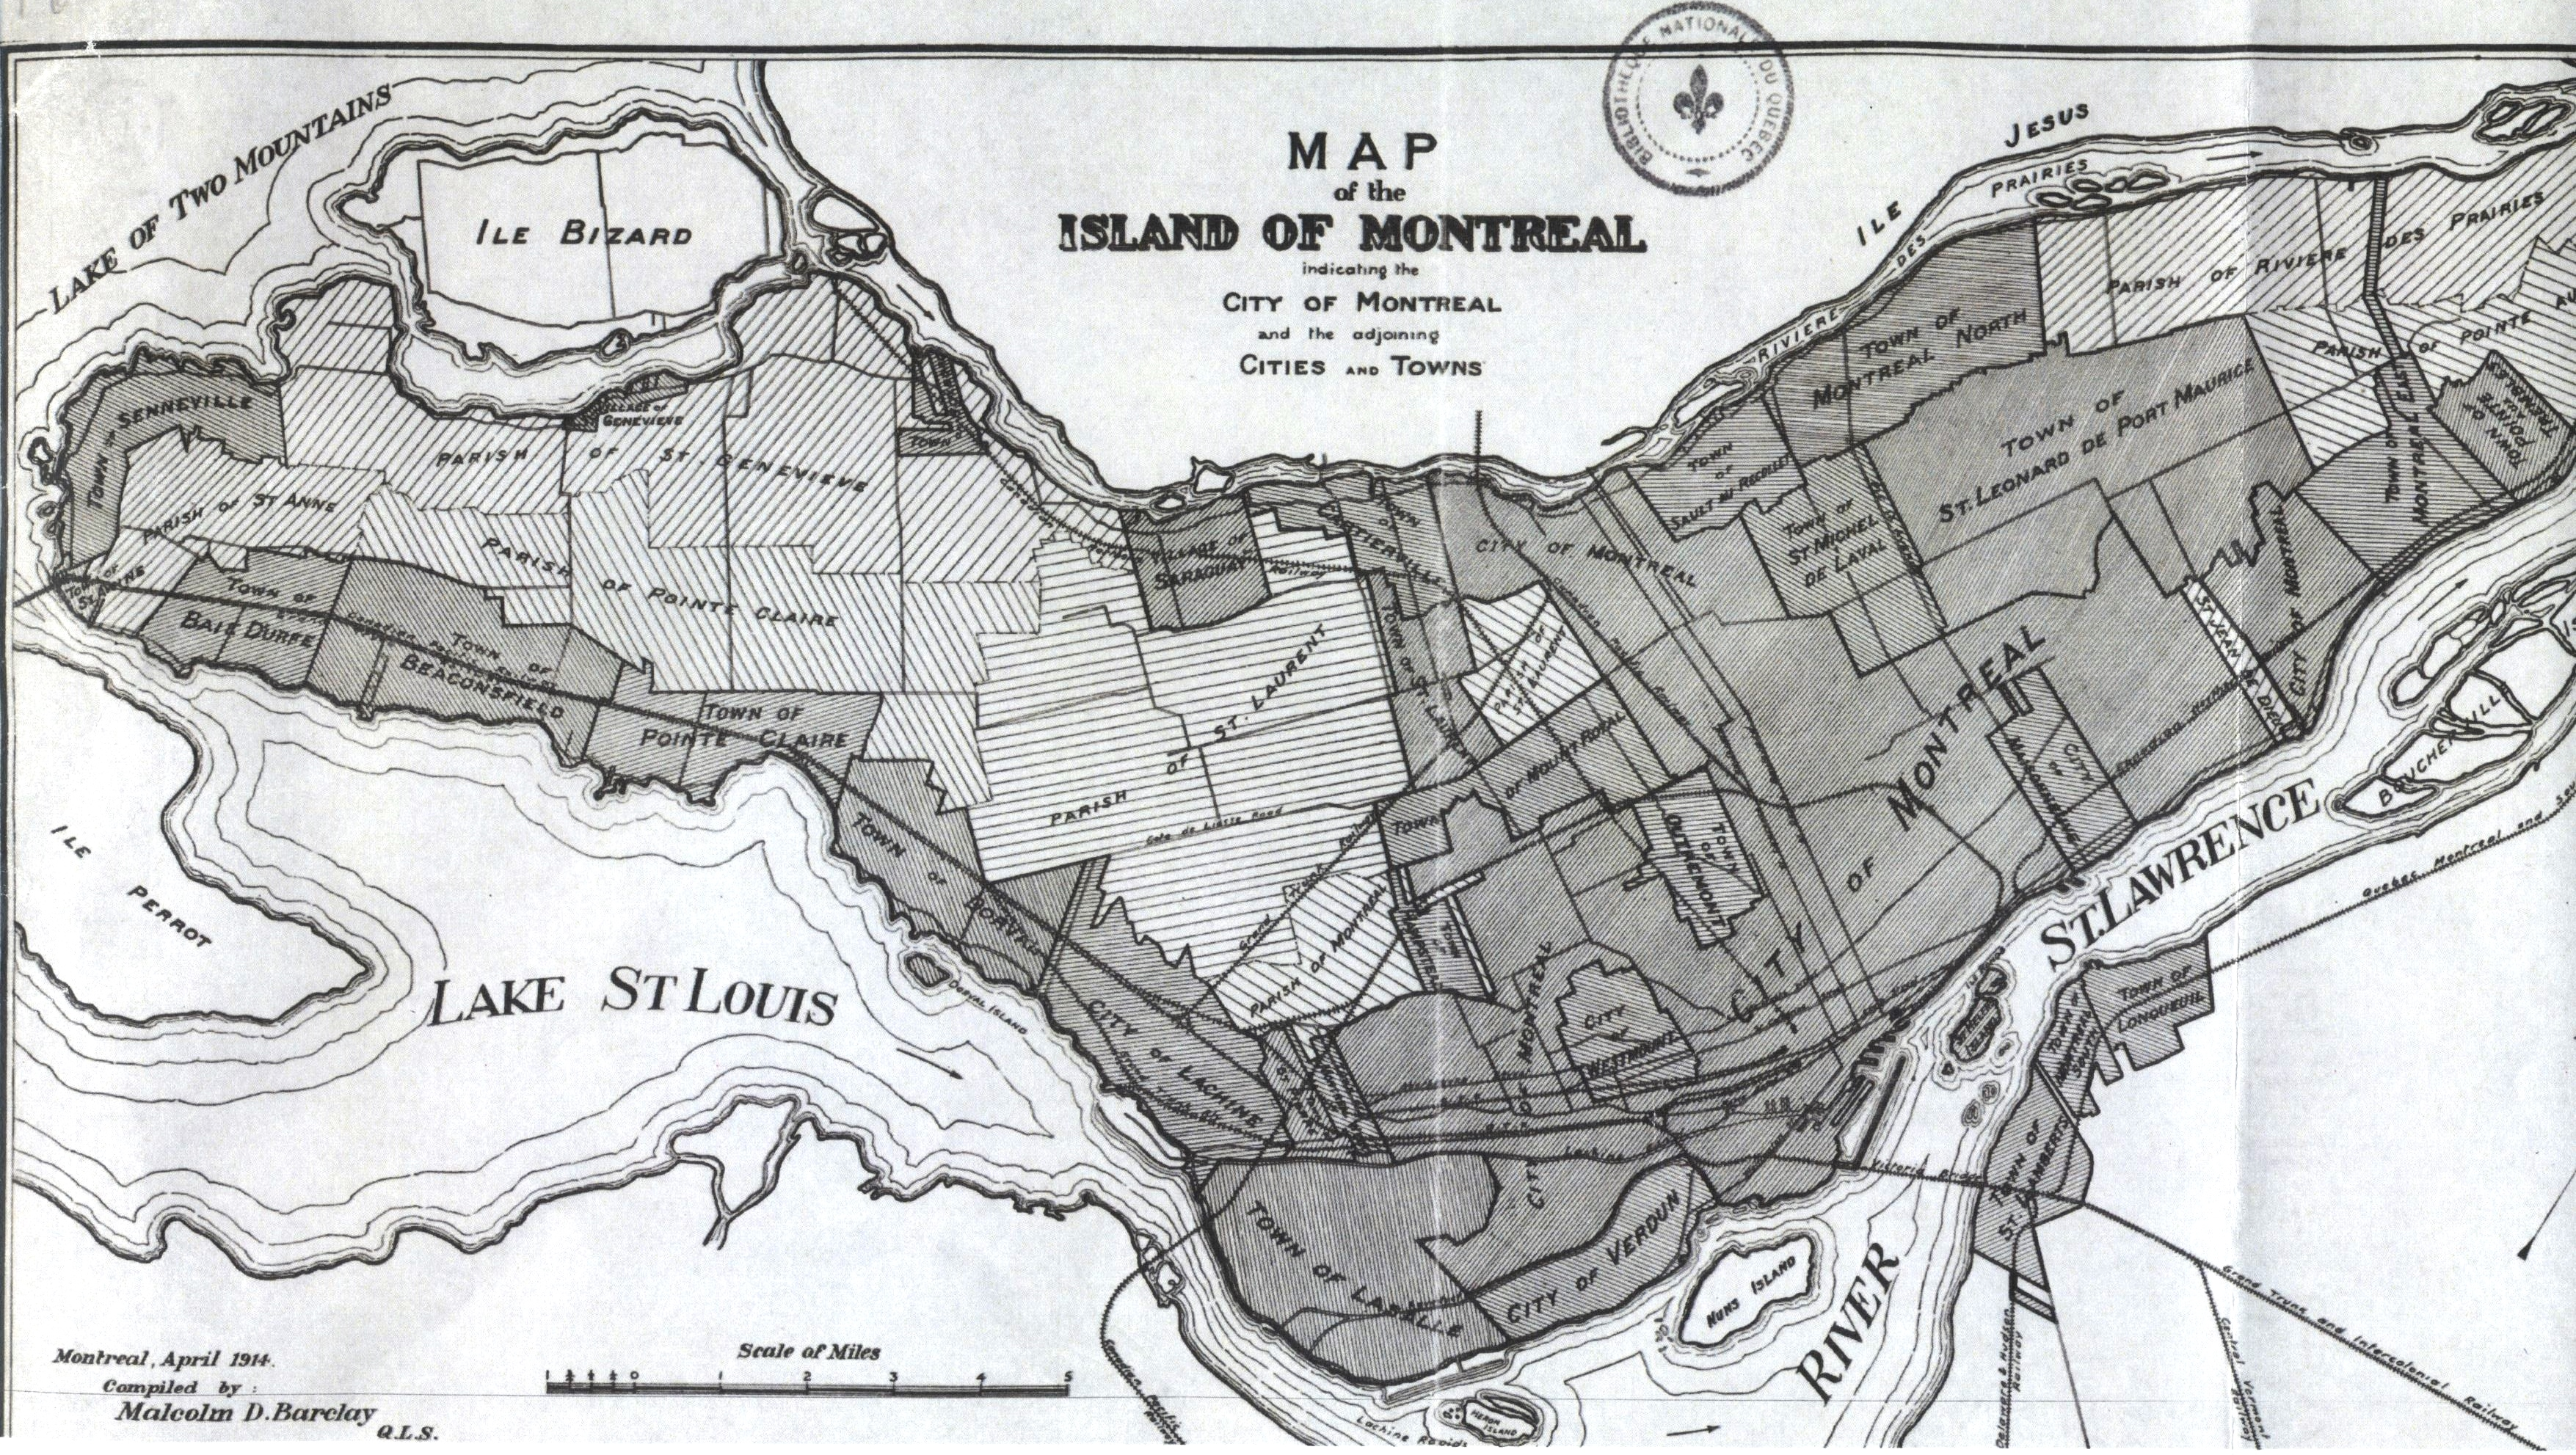 File:Map of the Island of Montreal - 1914.jpg - Wikimedia Commons